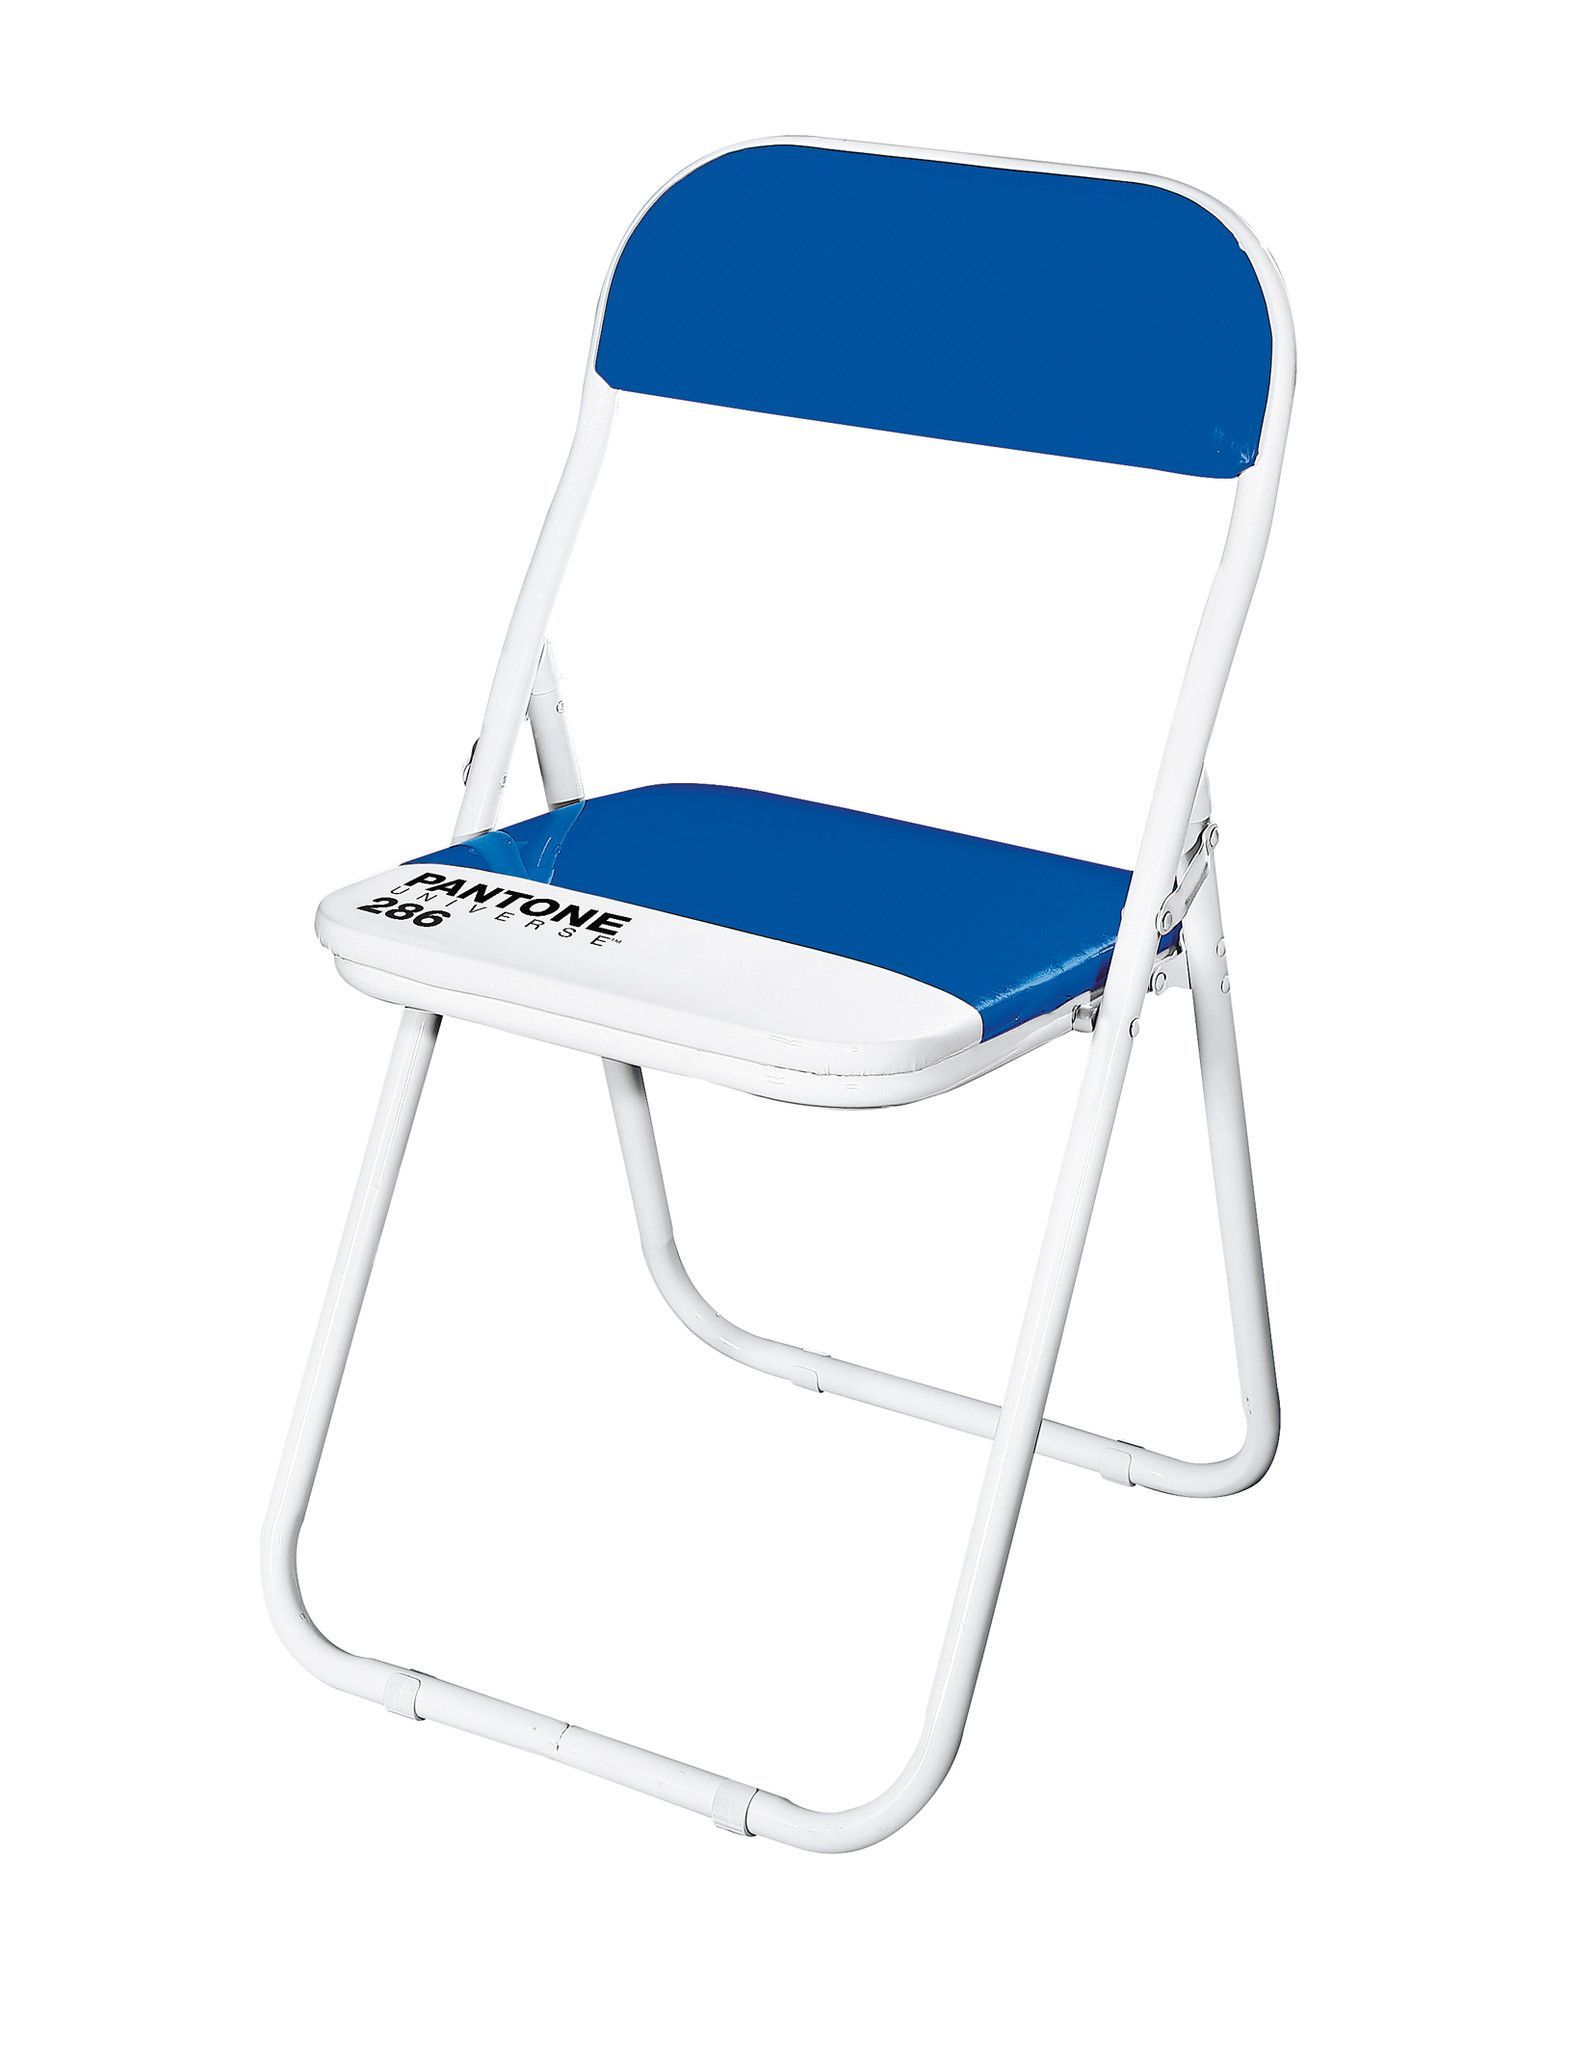 Pantone 286 Blue Metal Folding Chair